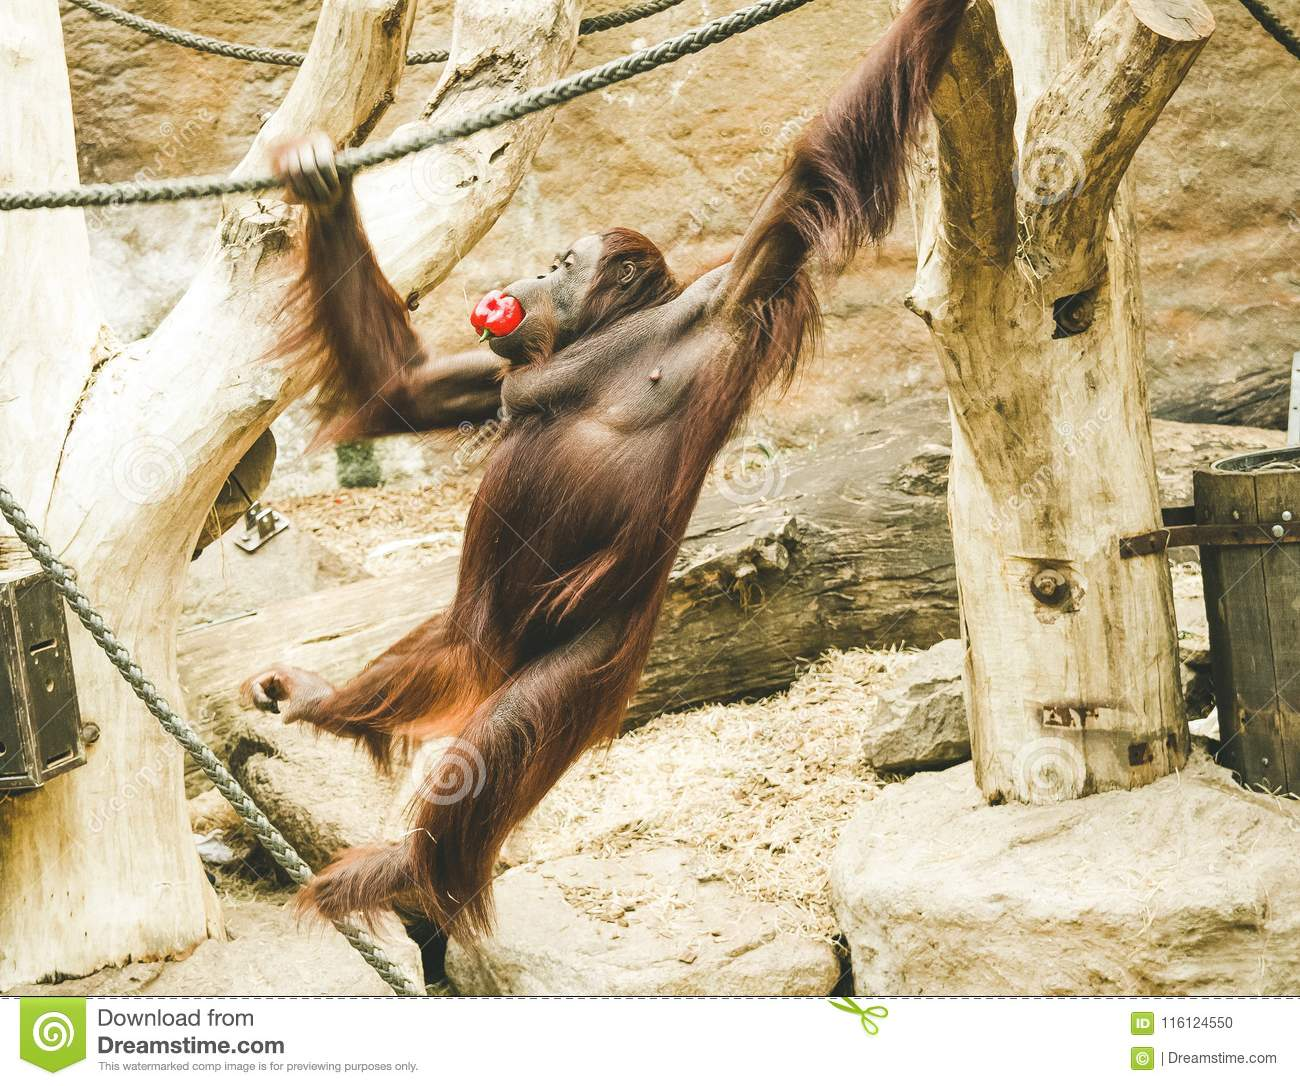 A jumping monkey in the zoo.